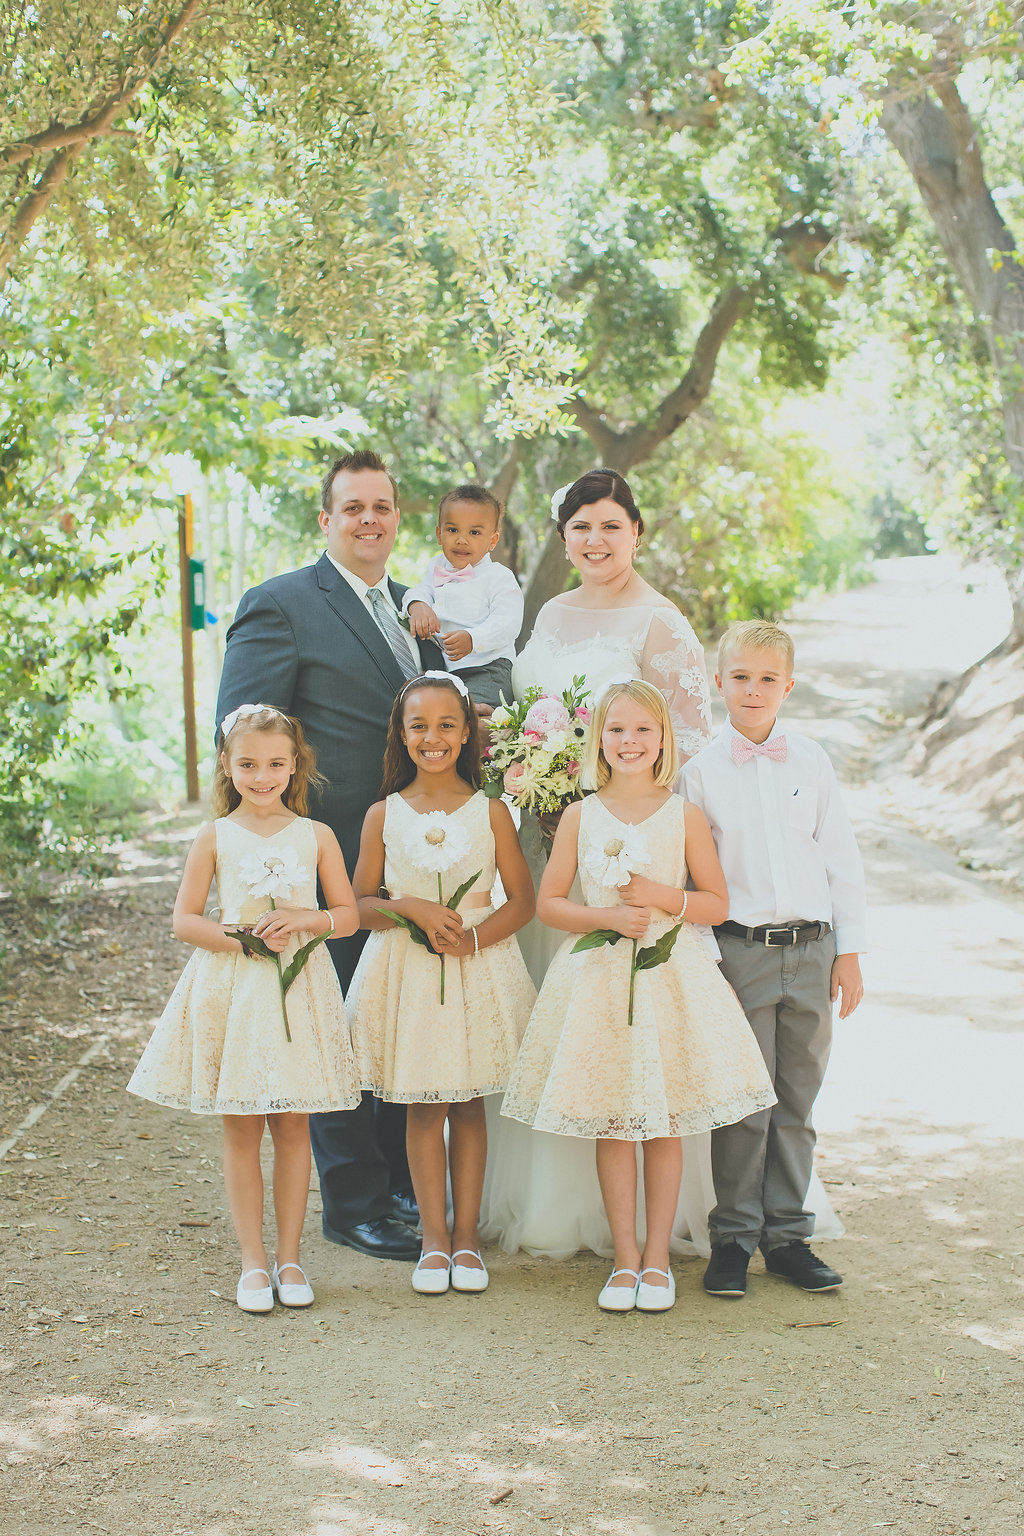 REAL WEDDING | DIY OUTDOOR WEDDING IN CALIFORNIA | David Nget Photography | Pretty Pear Bride